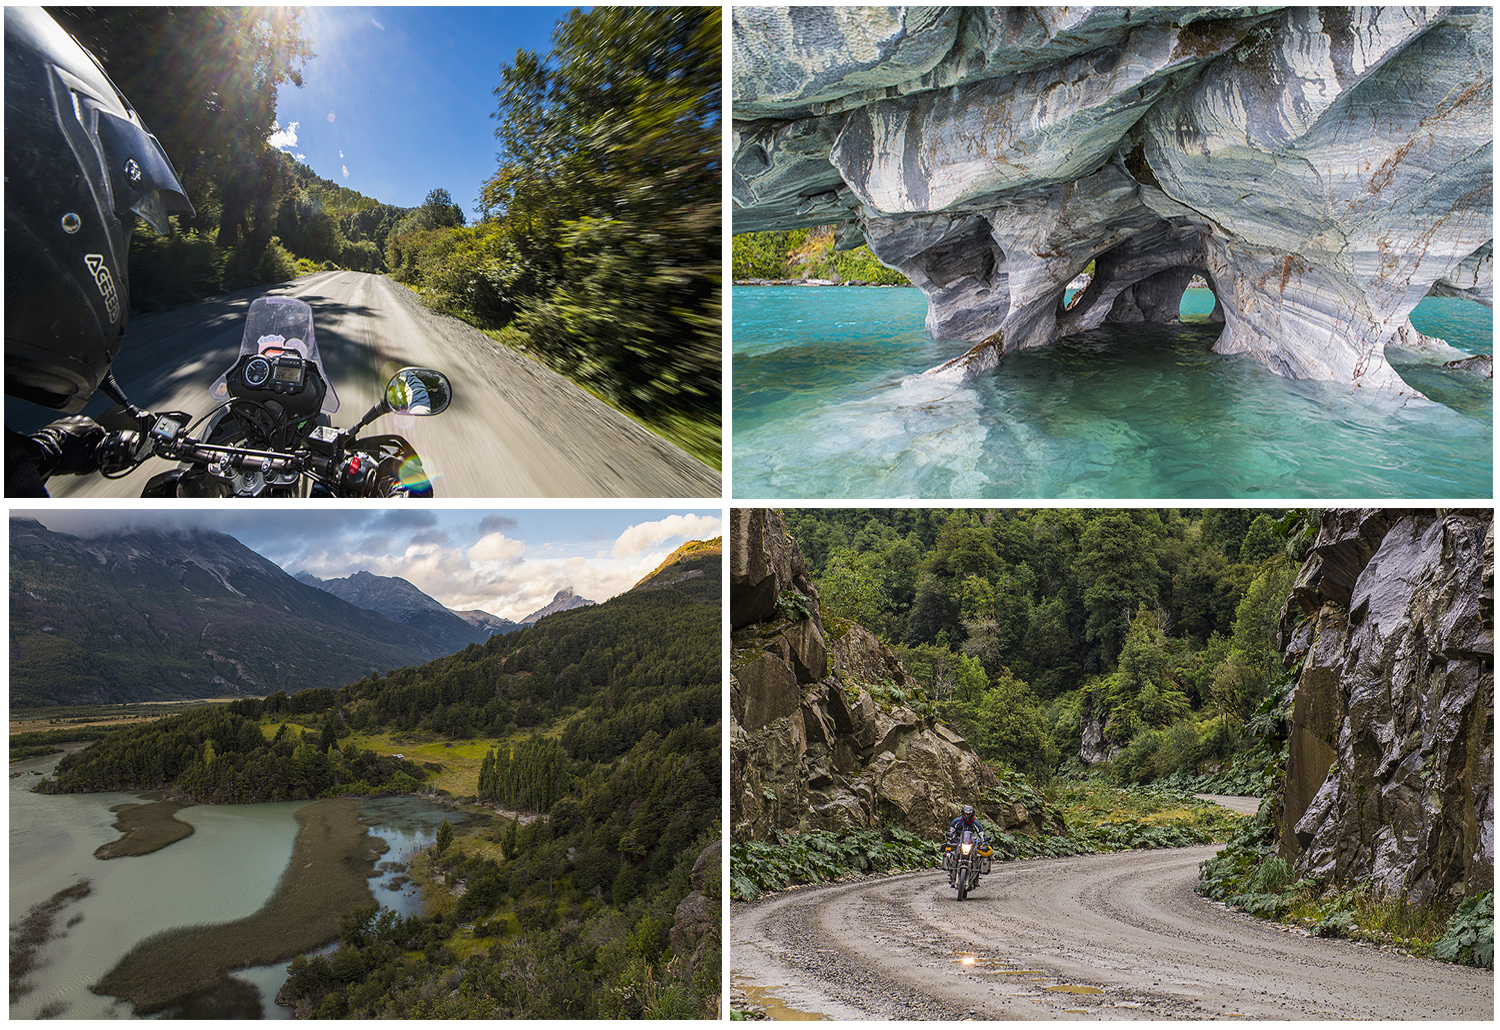 impressions from the road and the marble caves